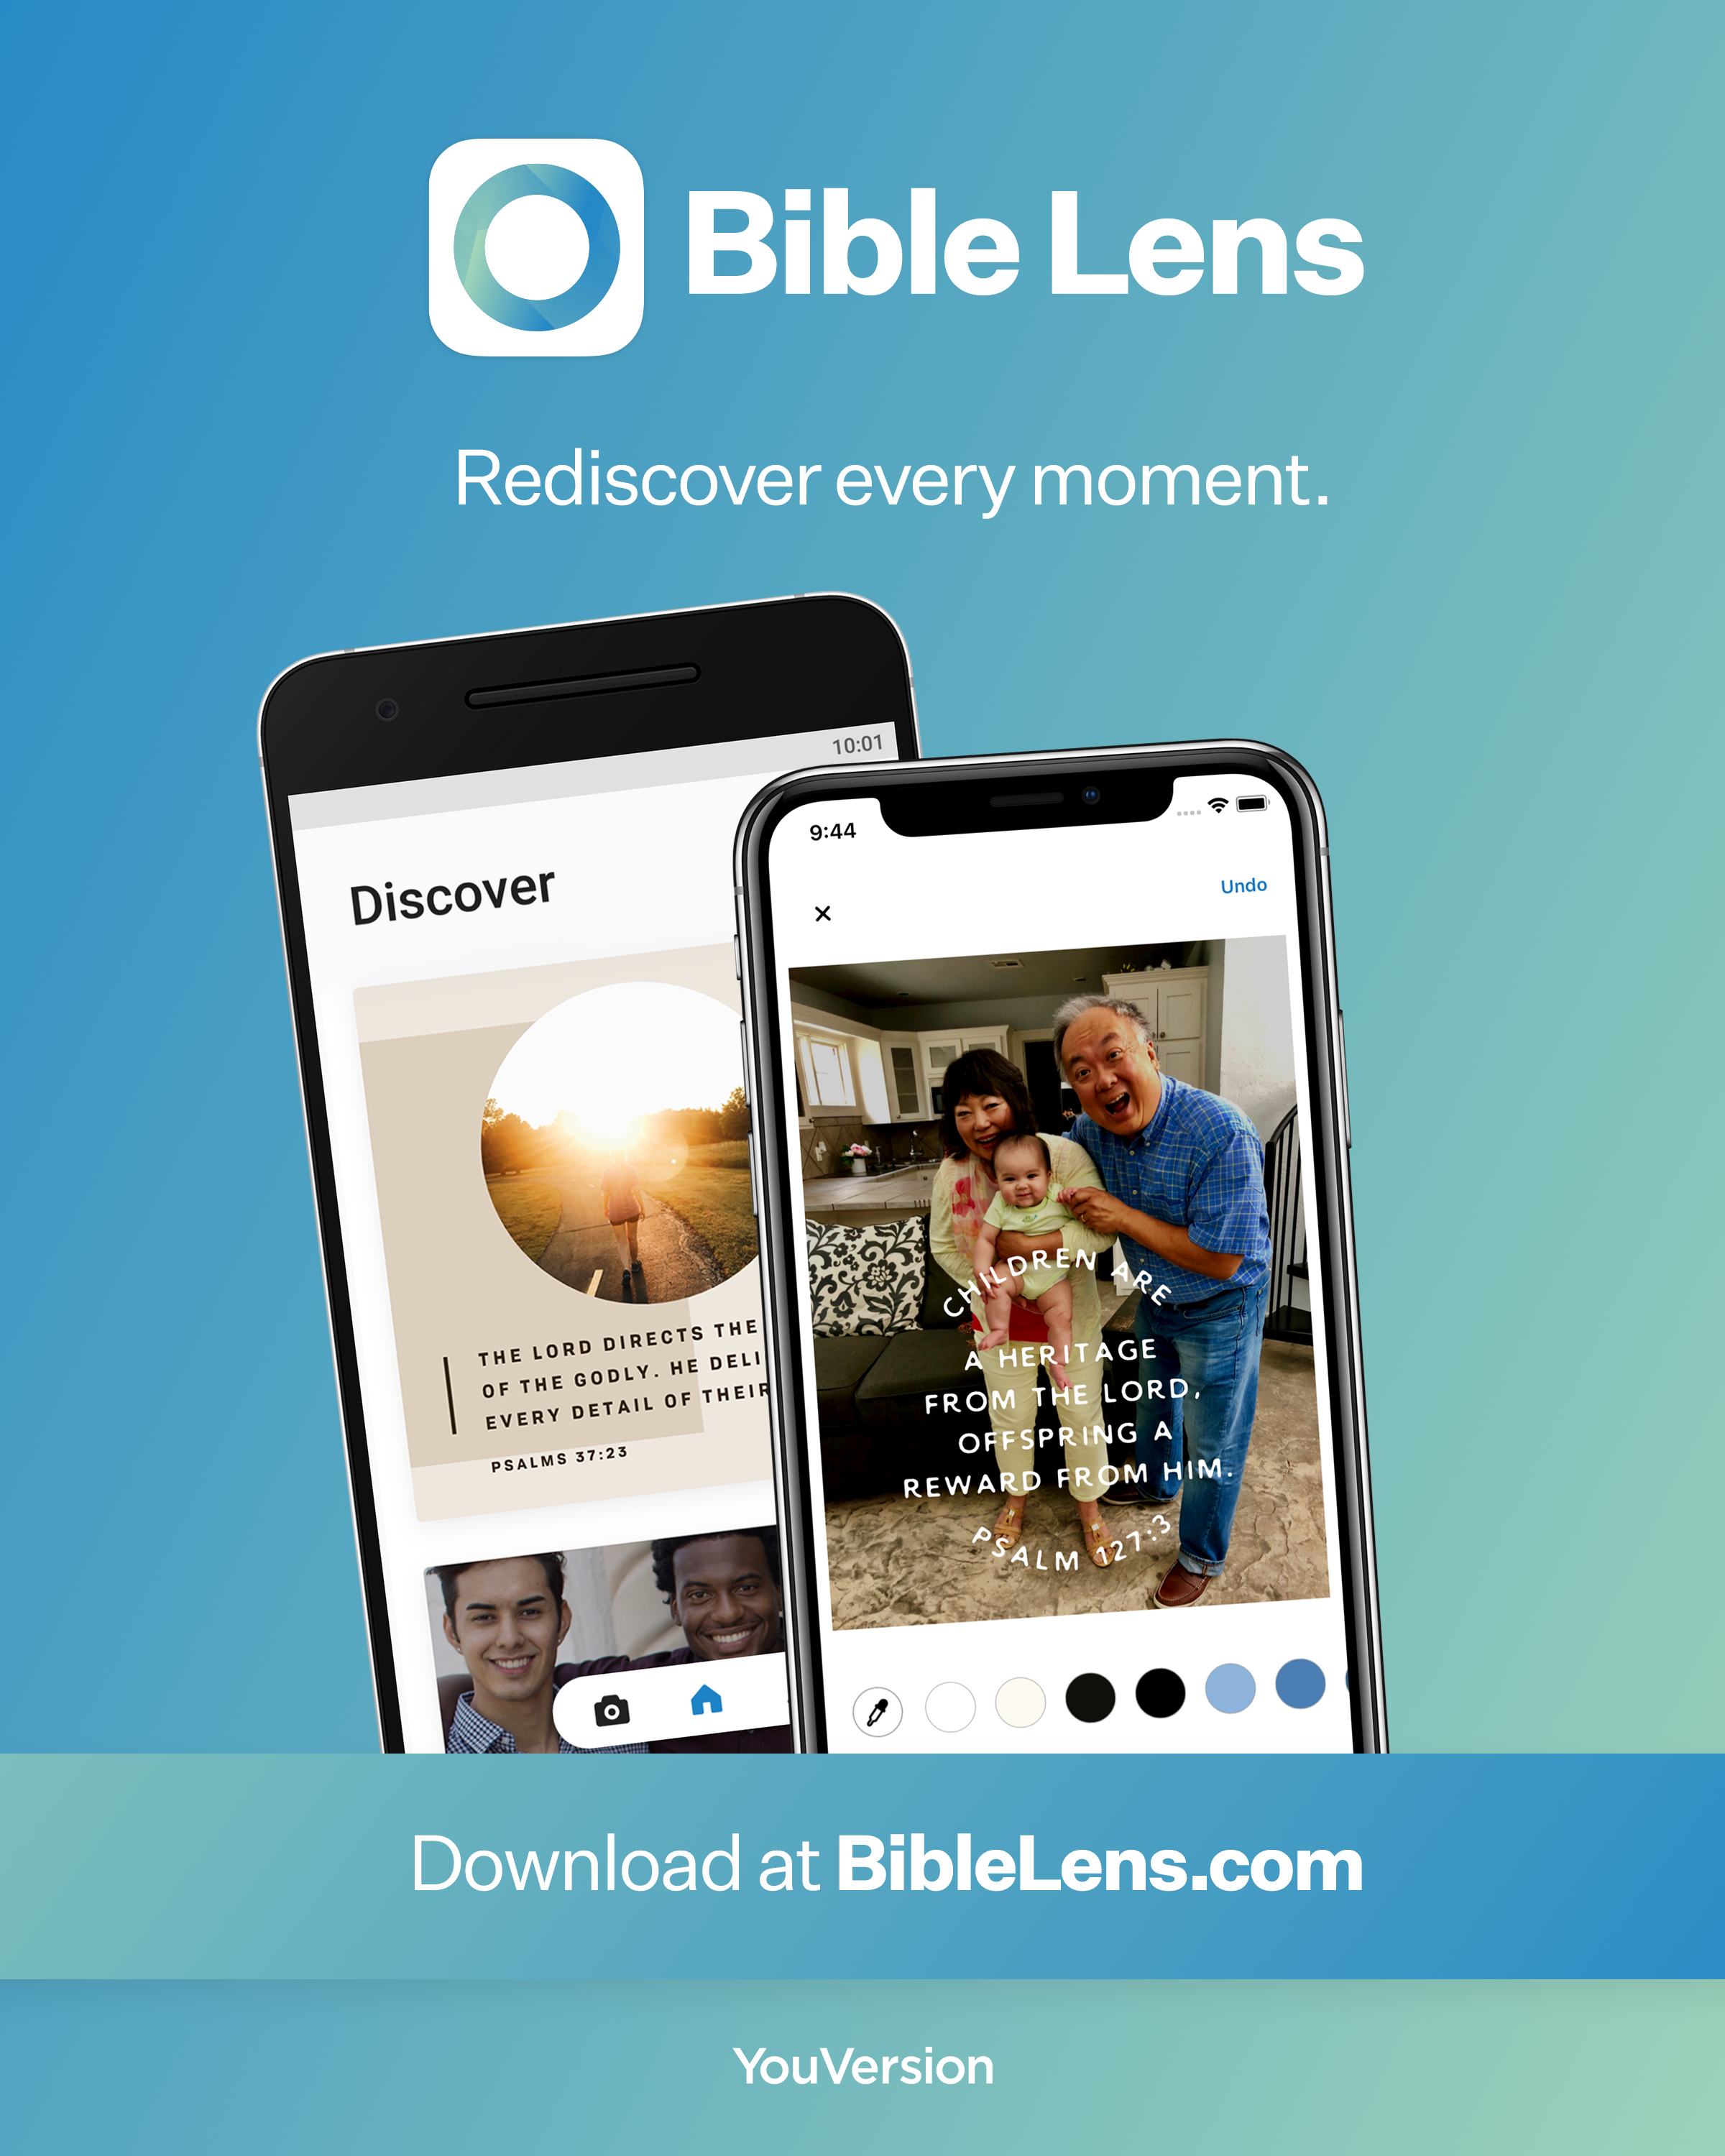 Bible Lens - Rediscover every moment.